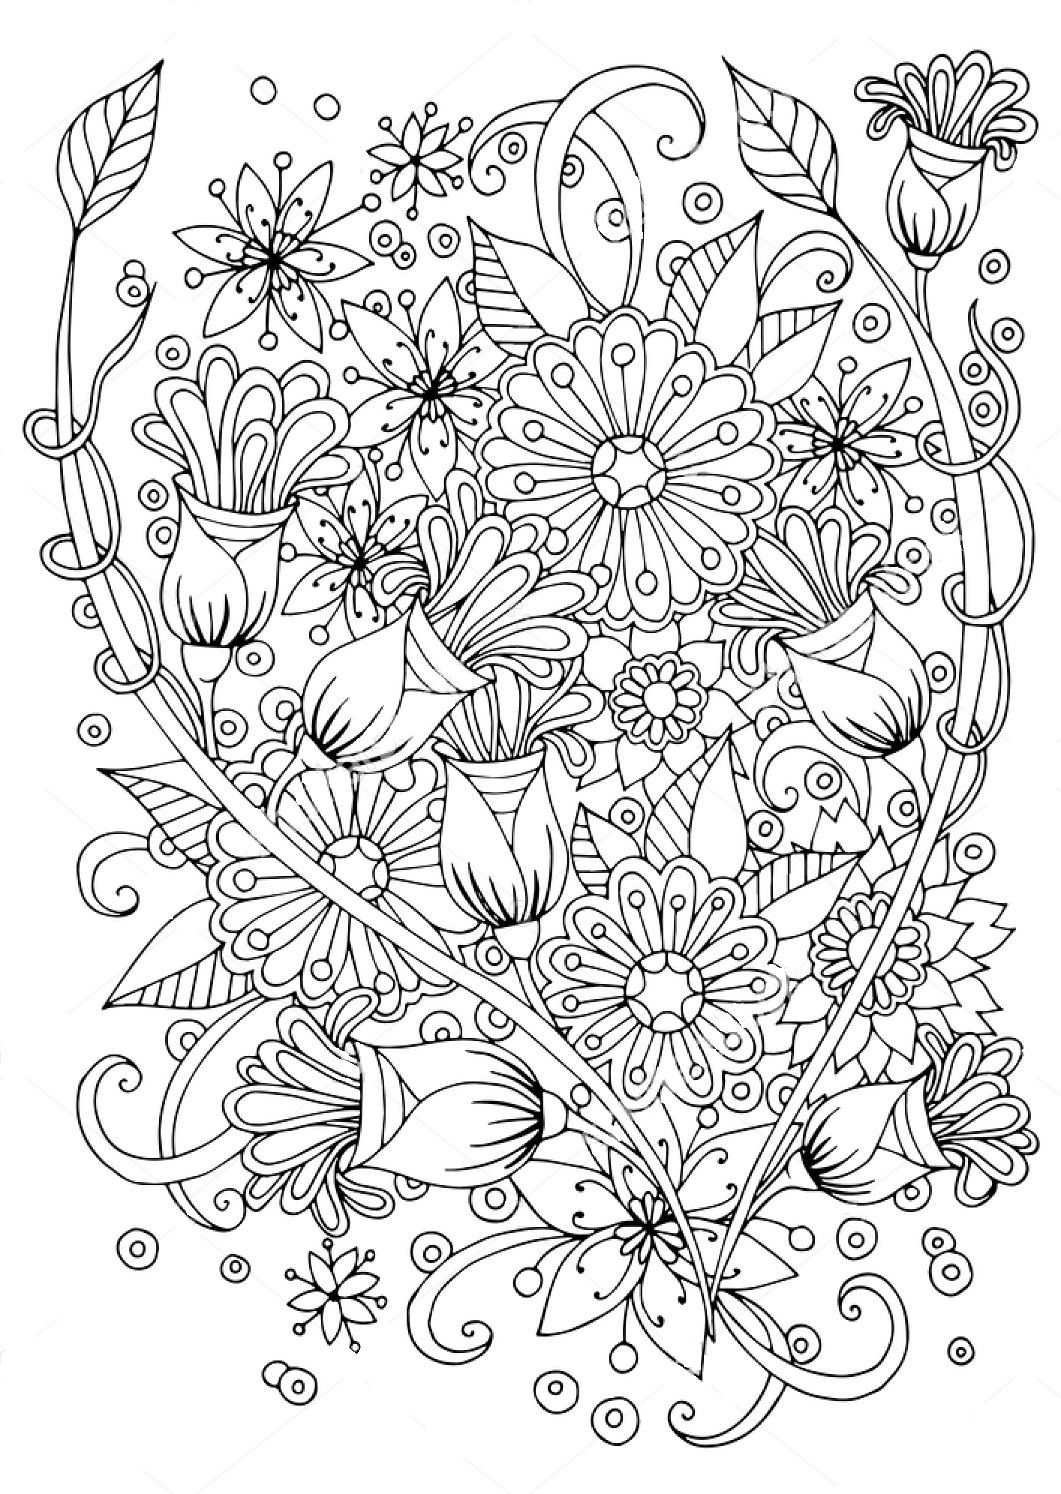 Flower Zentangle Coloring Page Coloring Book Pages Coloring Pages Coloring Books